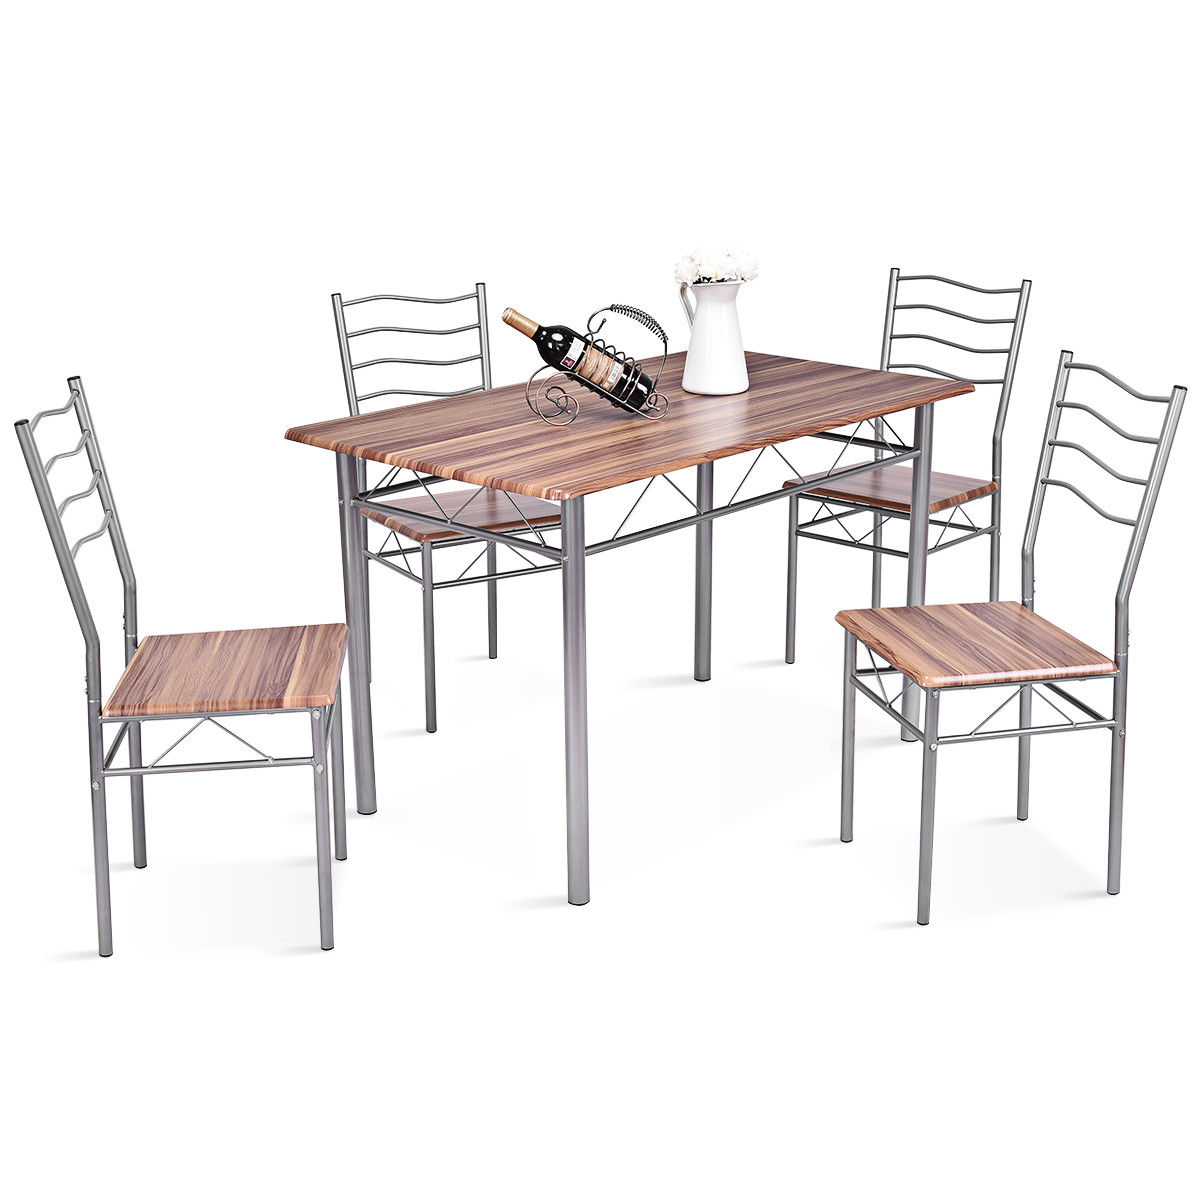 Gymax 5 Piece Dining Set Beech Wooden Color Table And 4